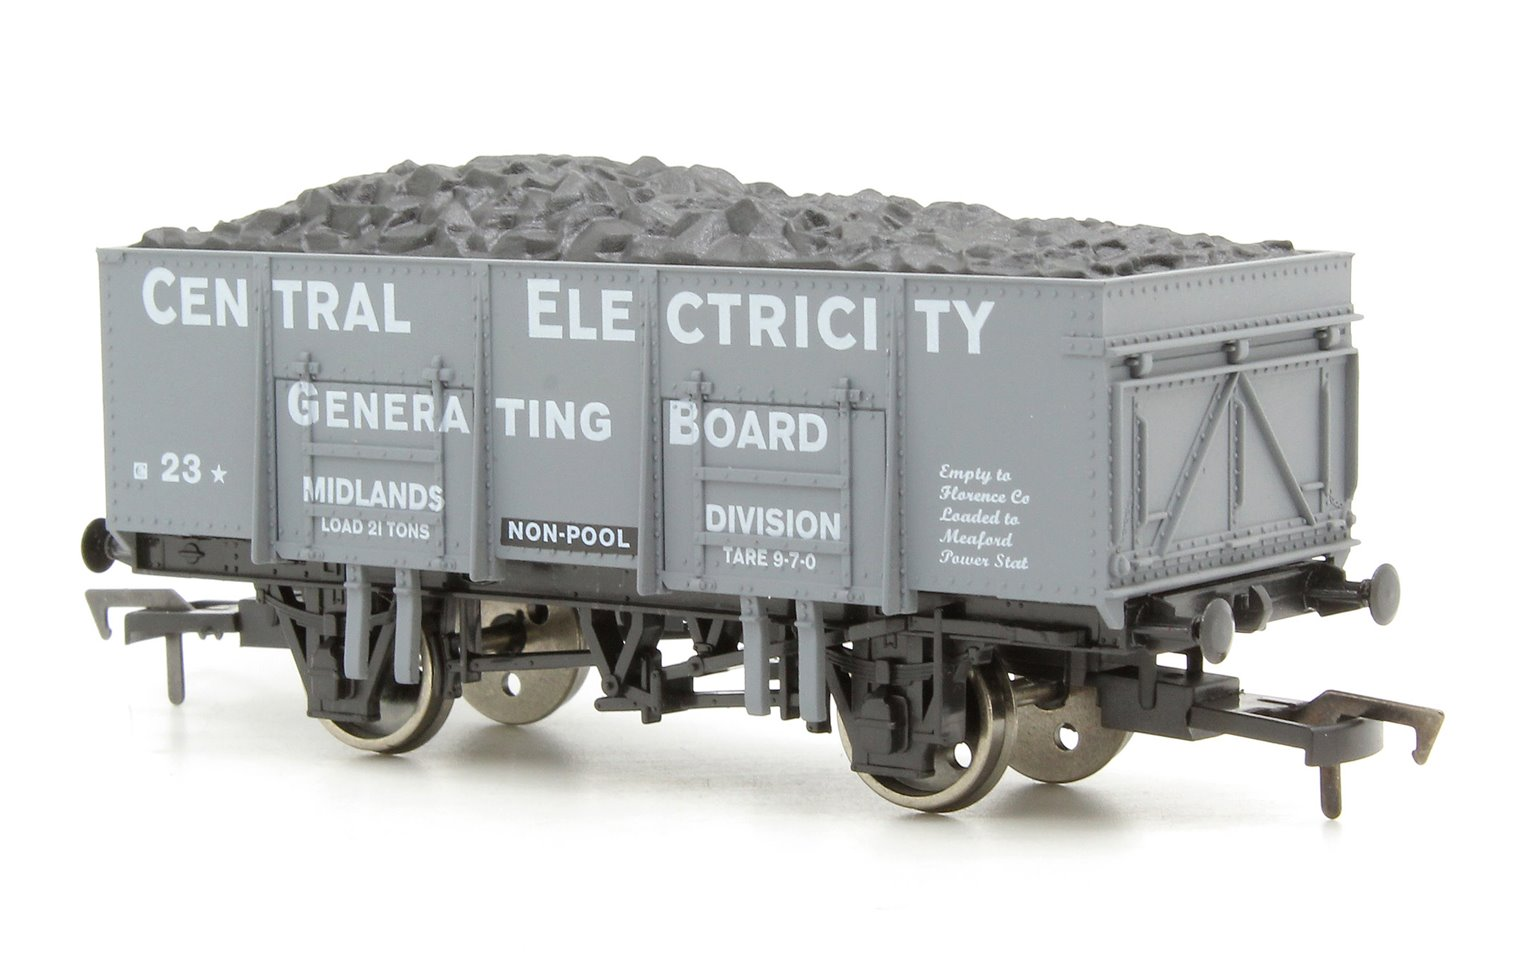 20t Steel Mineral Wagon - Central Electricity